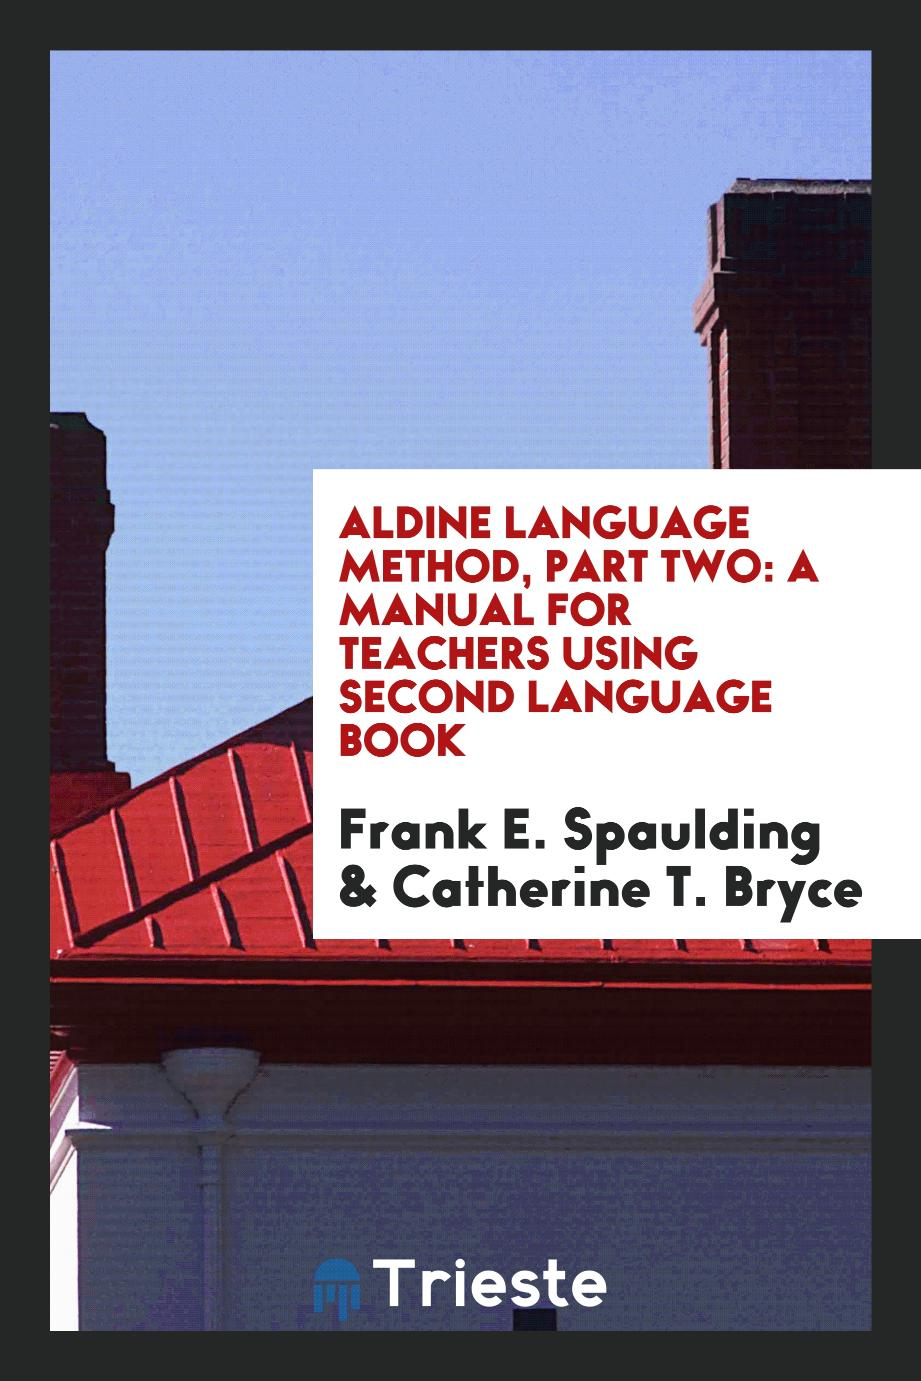 Aldine Language Method, Part Two: A Manual for Teachers Using Second Language Book